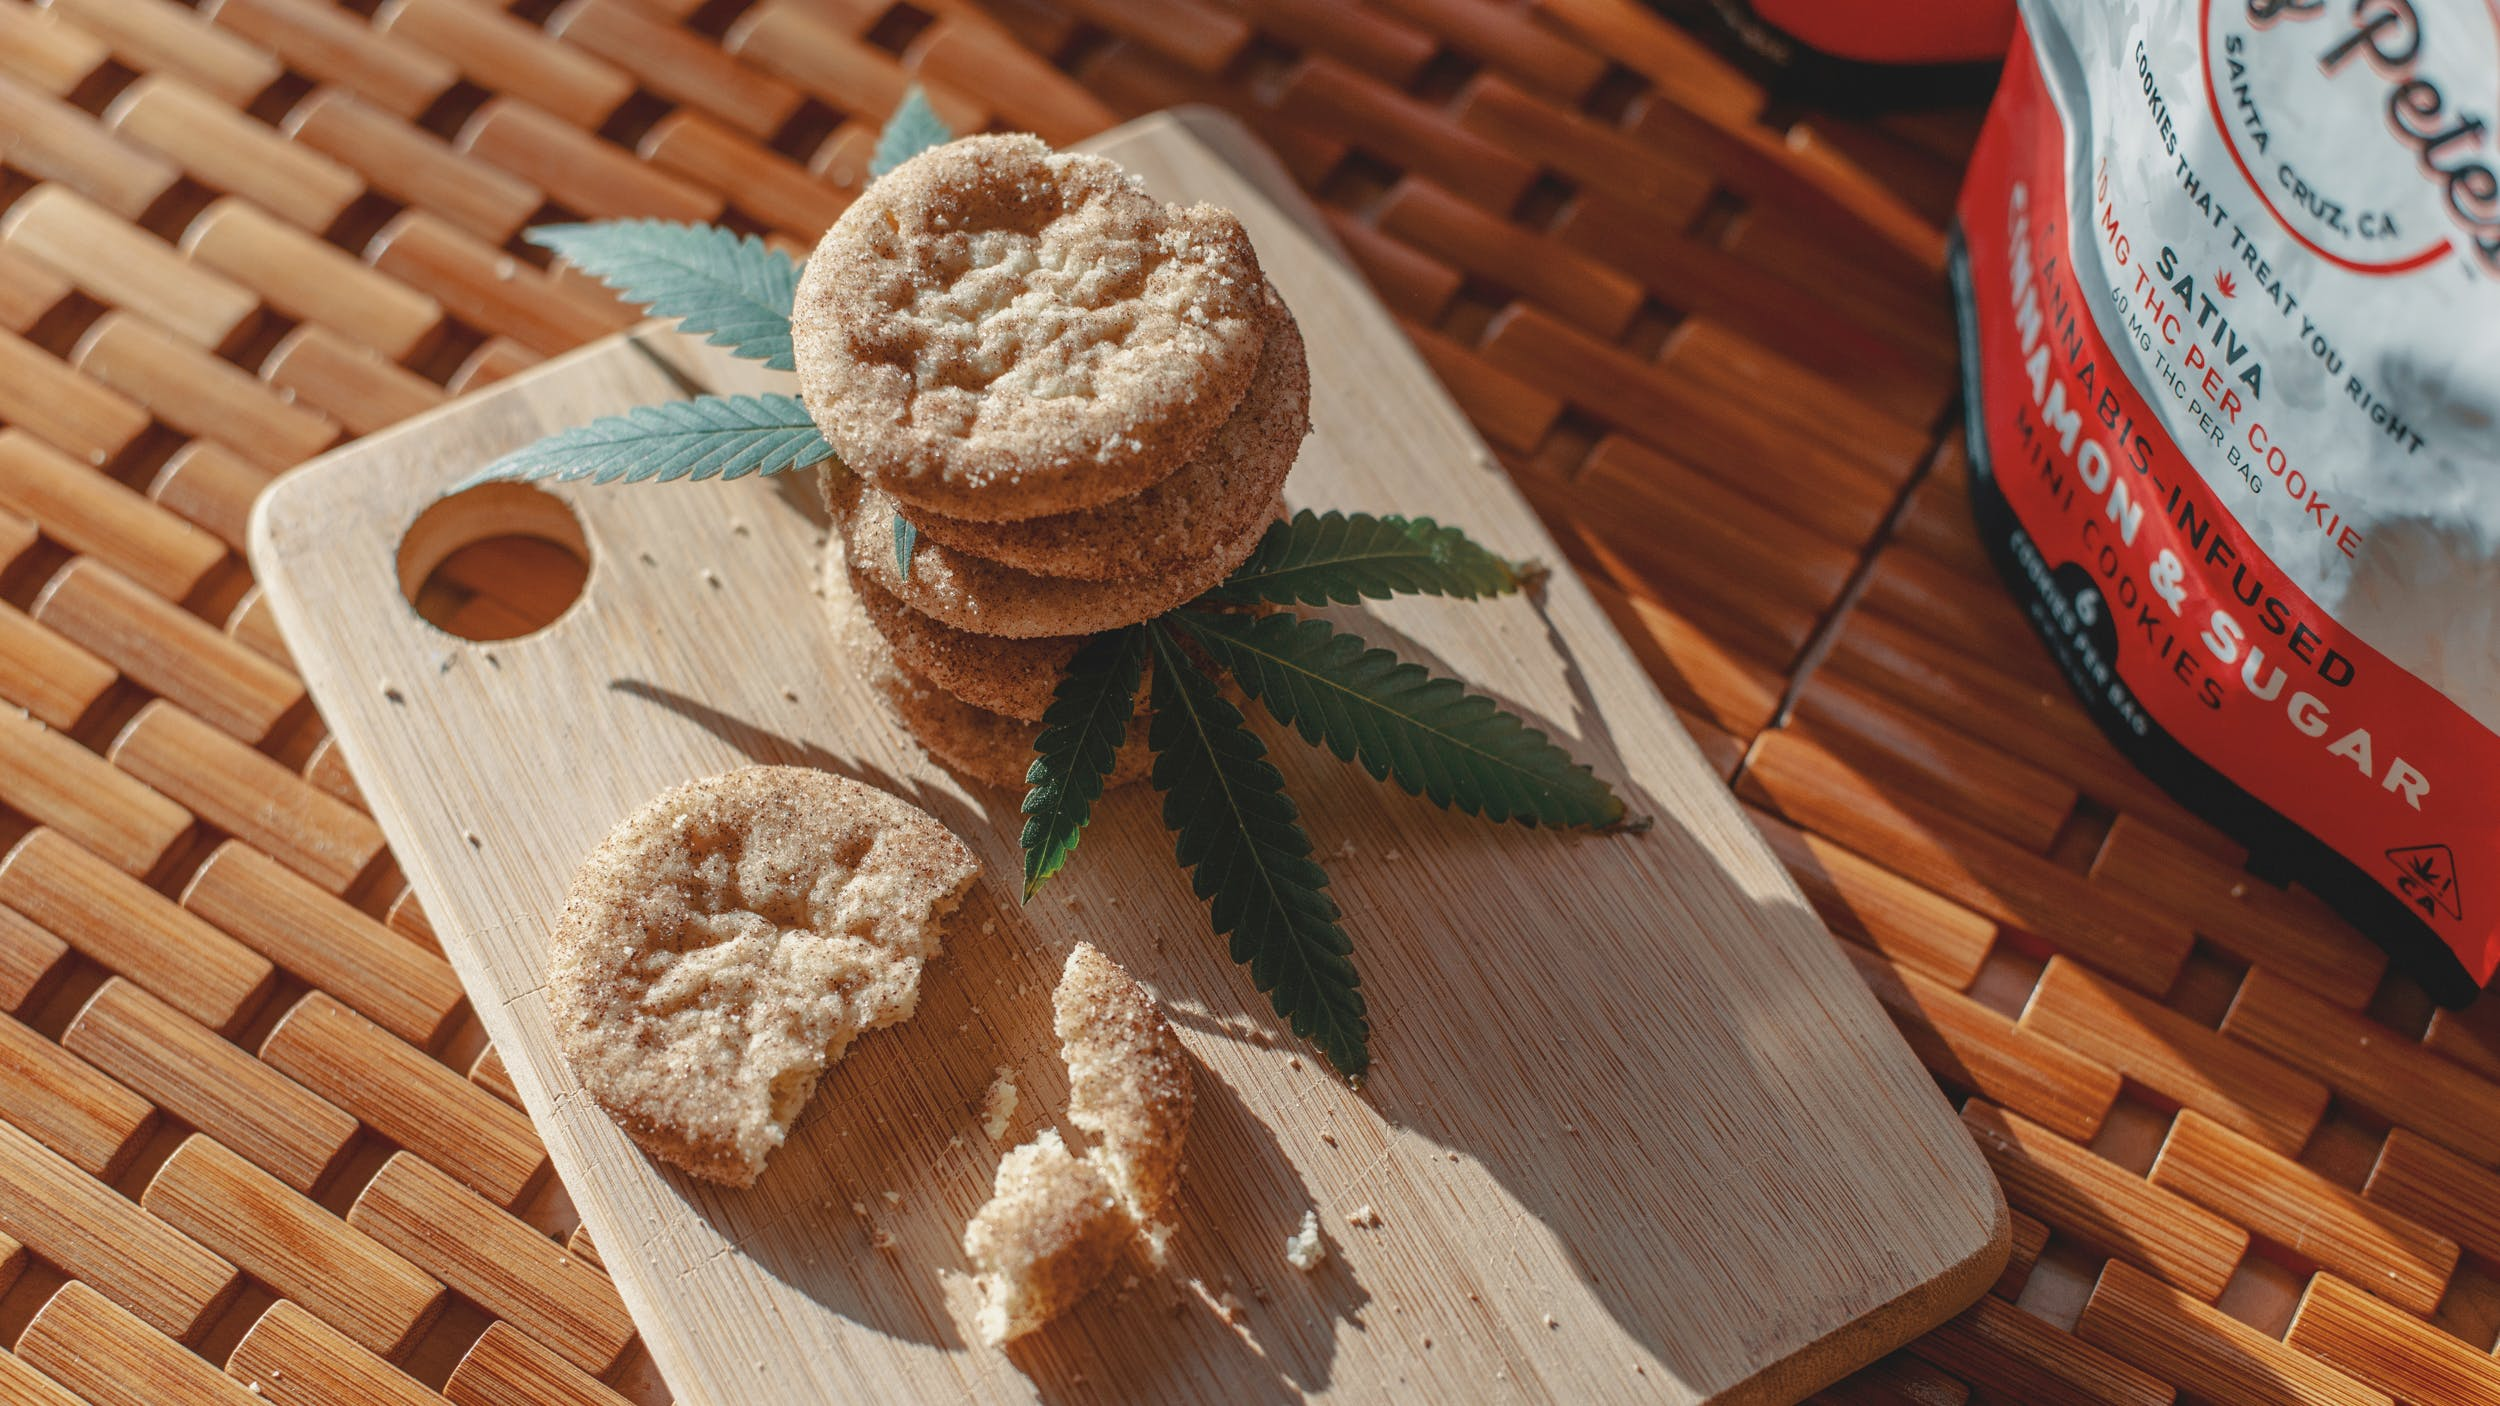 Best Weed Cookies These Are The Best Weed Cookies Weve Ever Tried